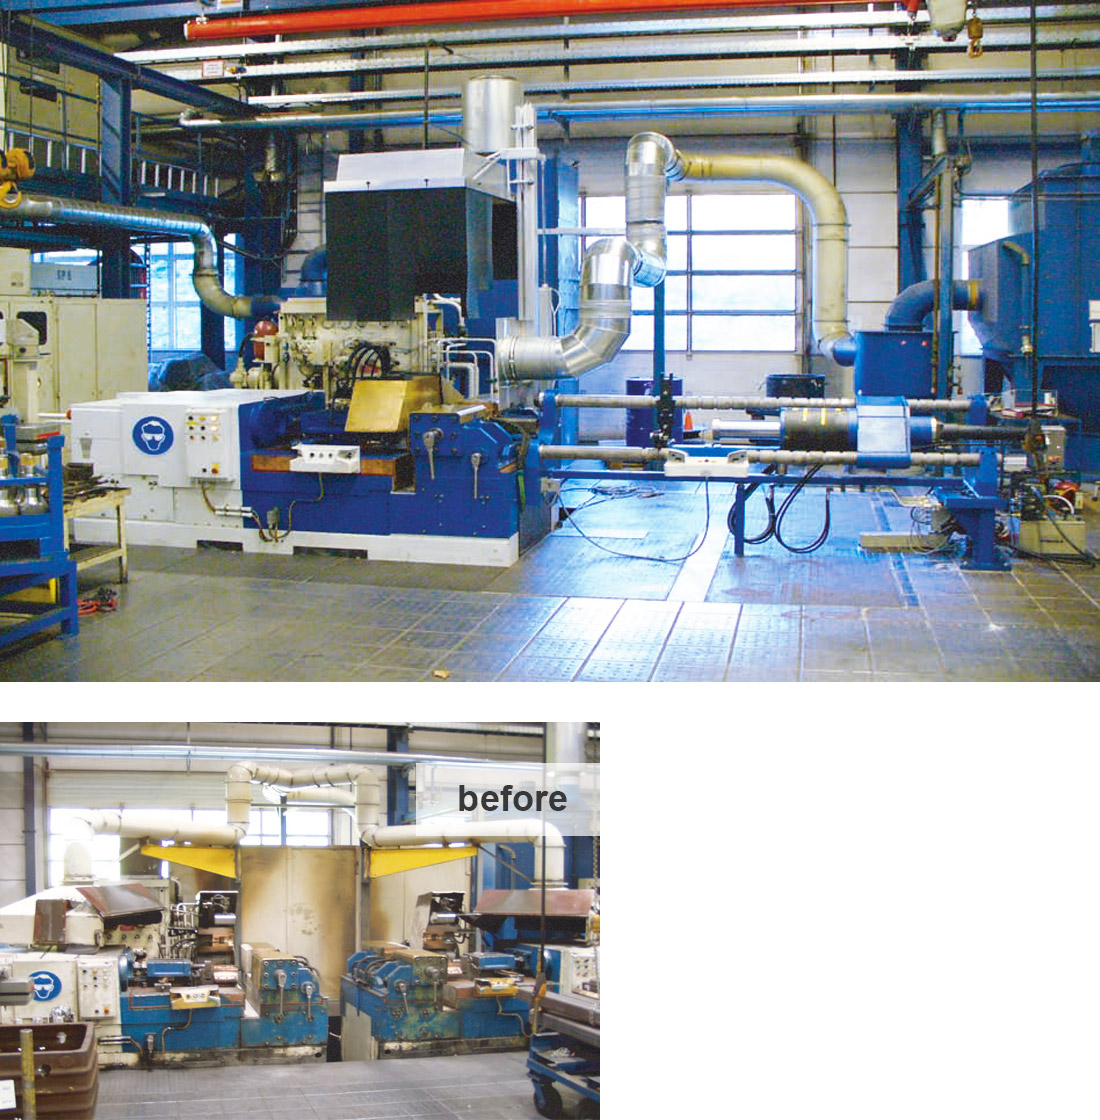 EDM Technik, Increase of Productivity, Dörries machine tool production, Machine tool overhaul